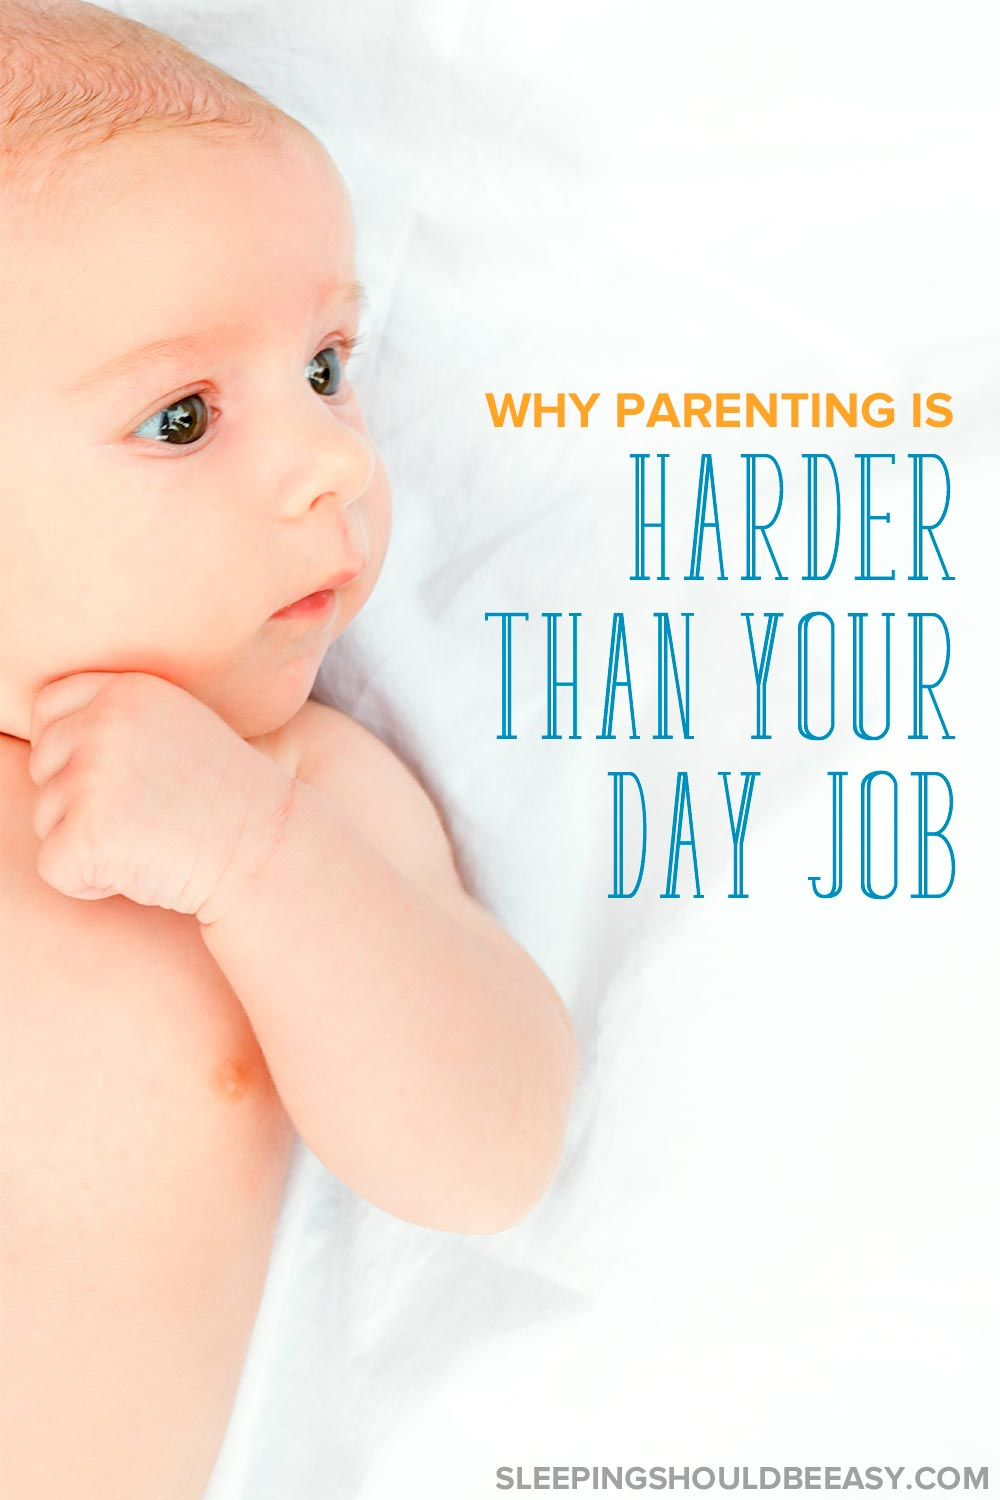 Is parenting harder than a job? Read several reasons being a parent is often harder than your day job, no matter your career.